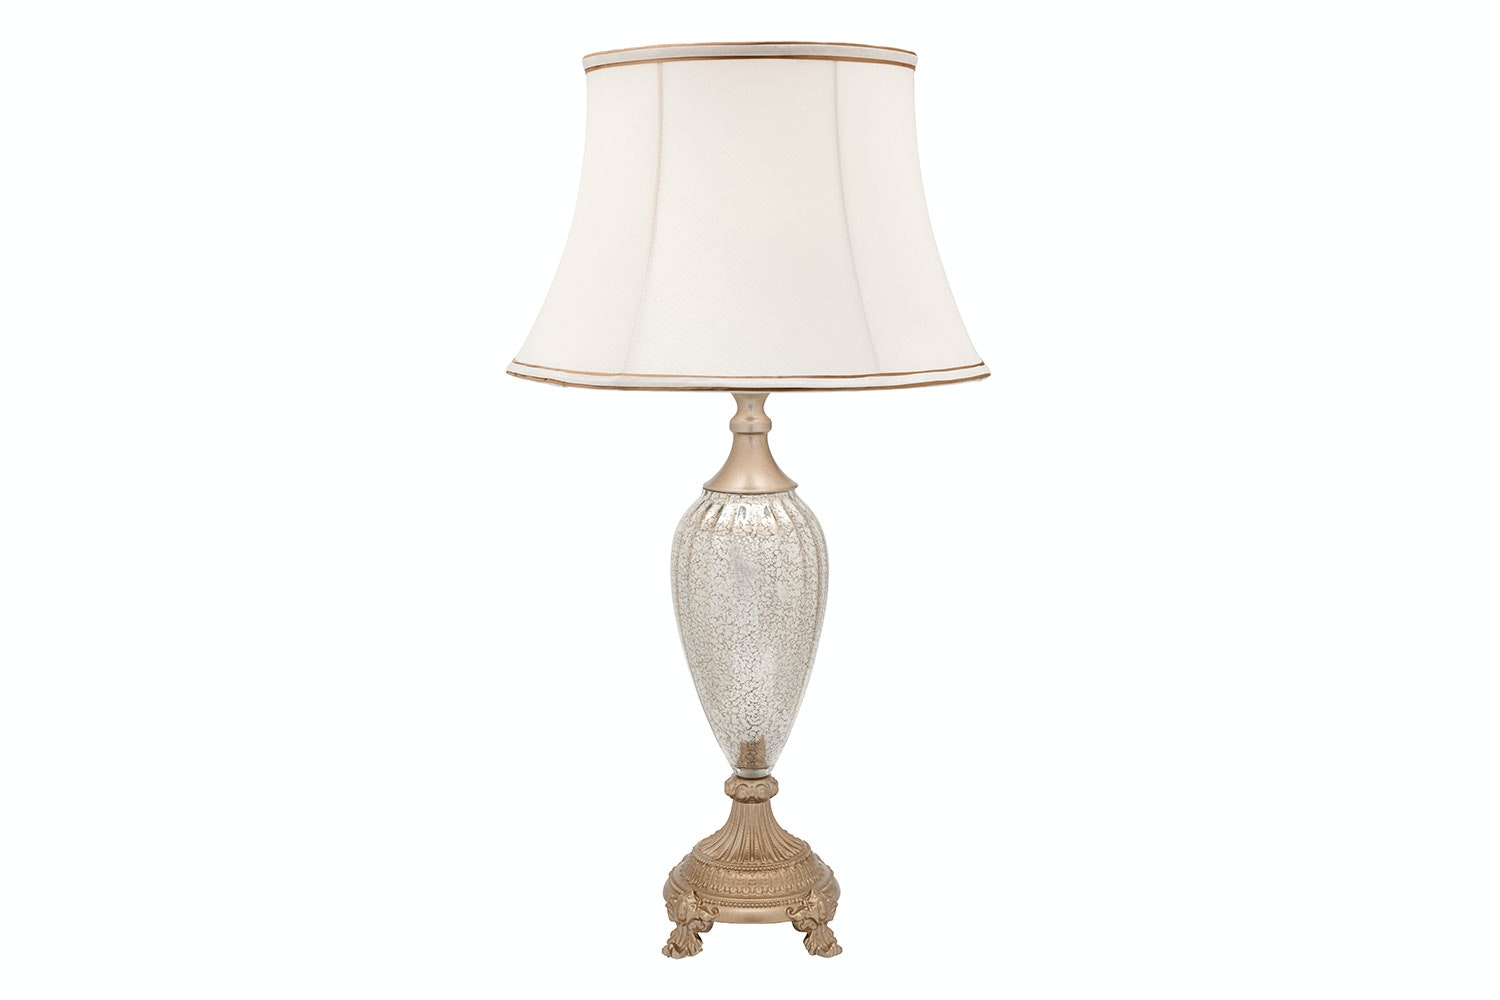 Idina Table Lamp by Shady Lady